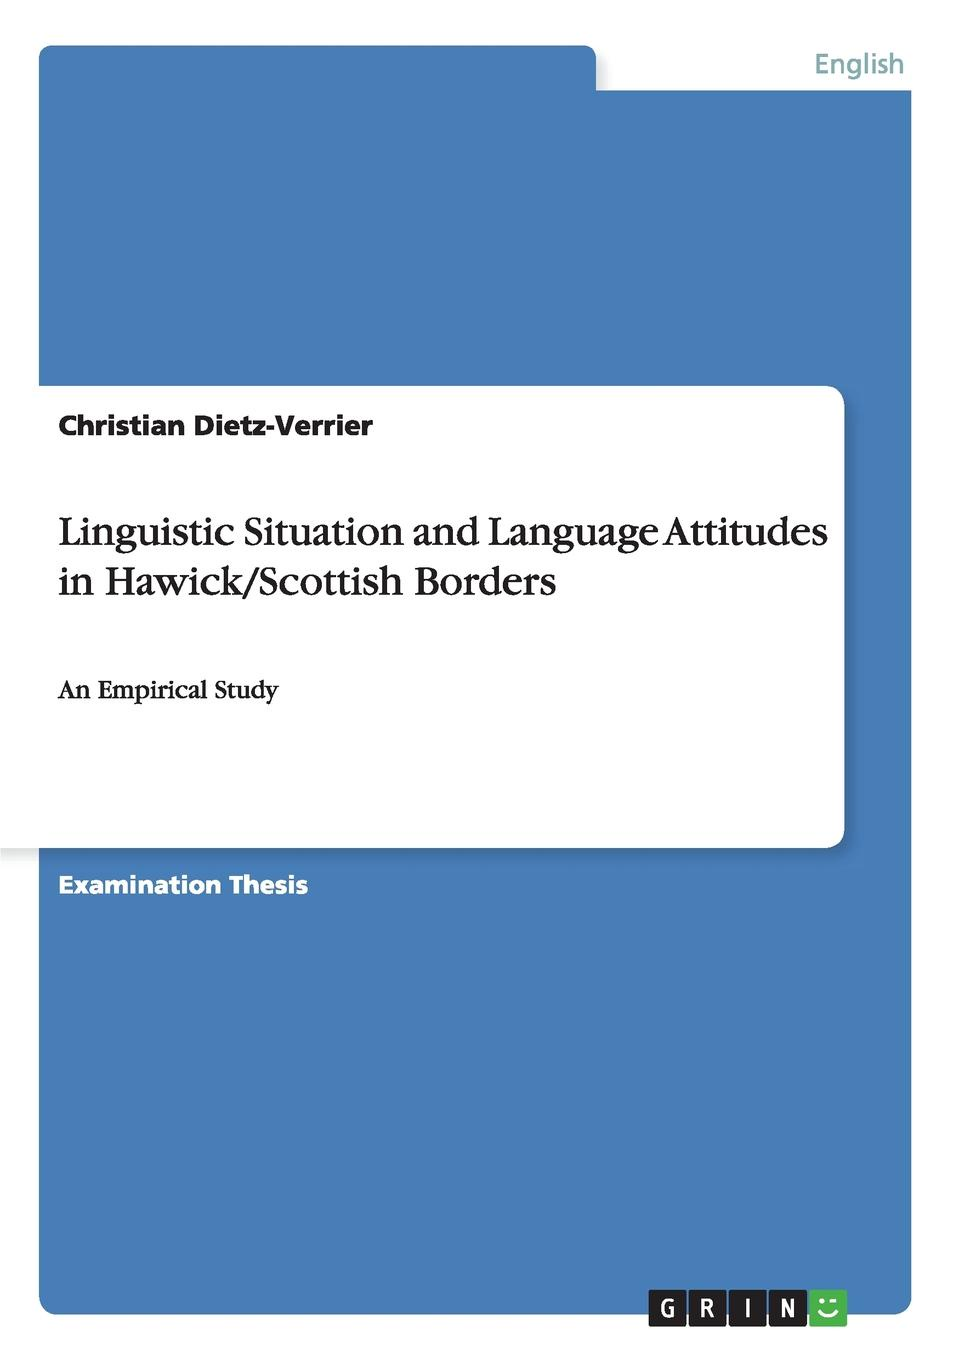 Christian Dietz-Verrier Linguistic Situation and Language Attitudes in Hawick/Scottish Borders the comparative typology of spanish and english texts story and anecdotes for reading translating and retelling in spanish and english adapted by © linguistic rescue method level a1 a2